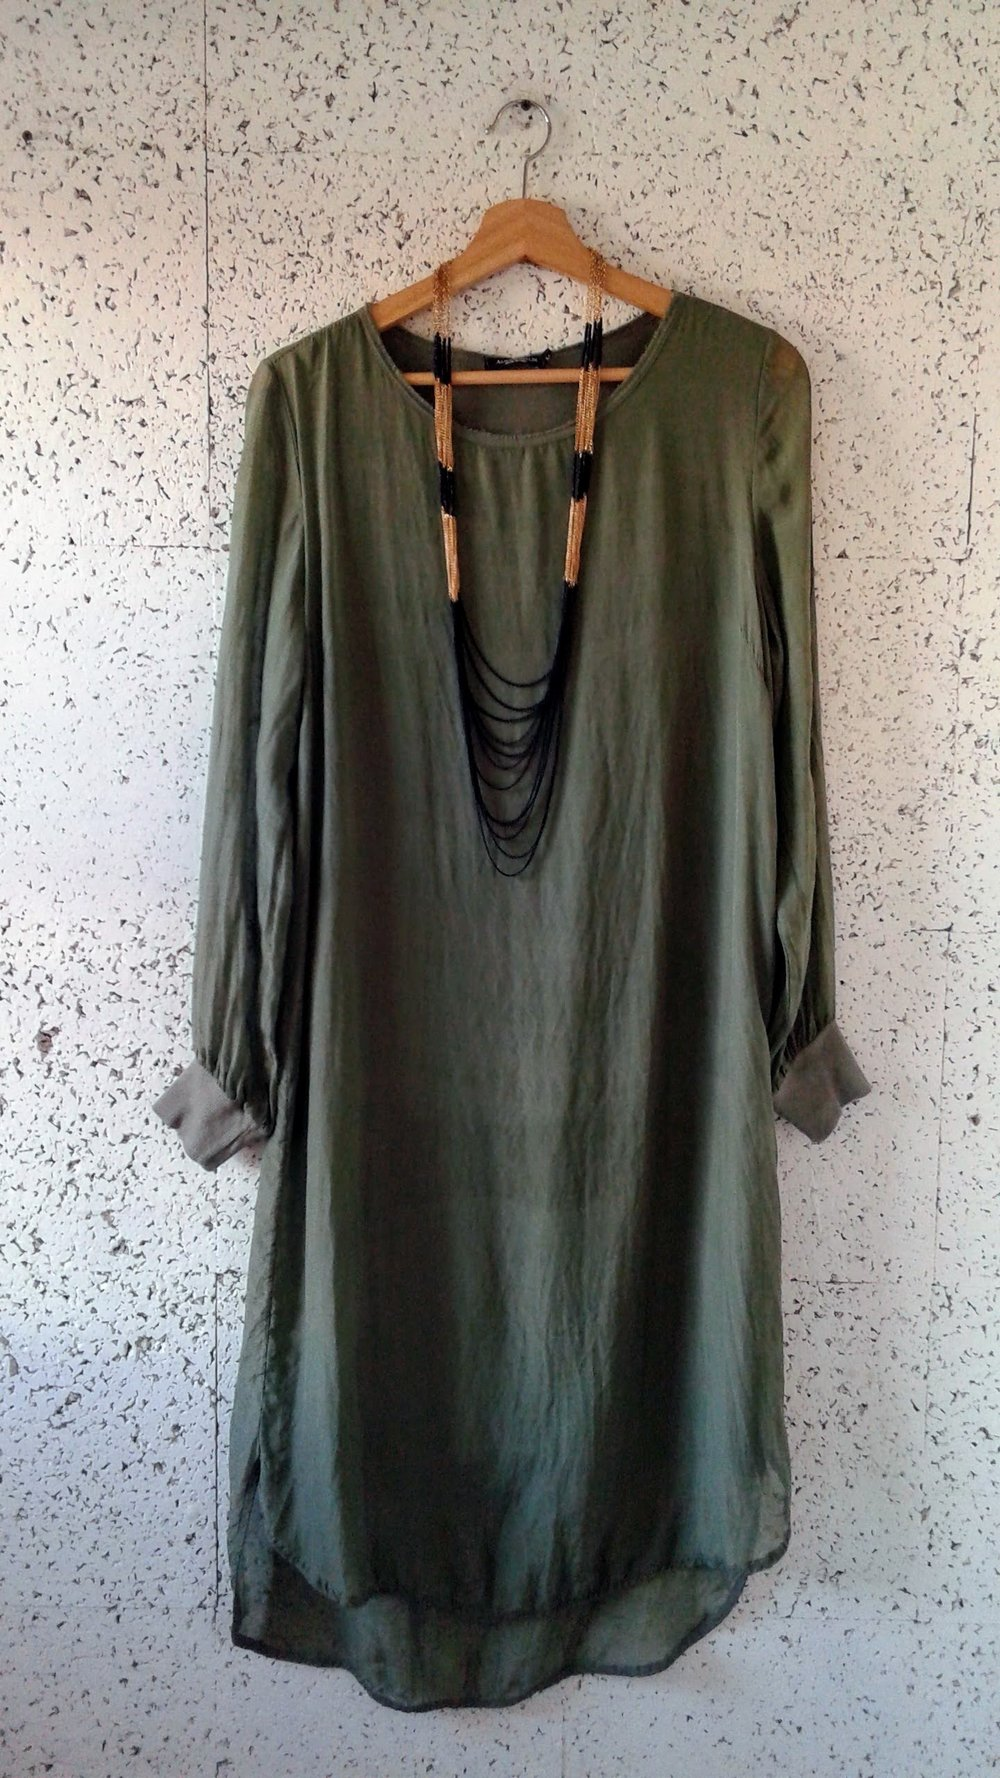 Alice Rinaldi dress; Size M, $48